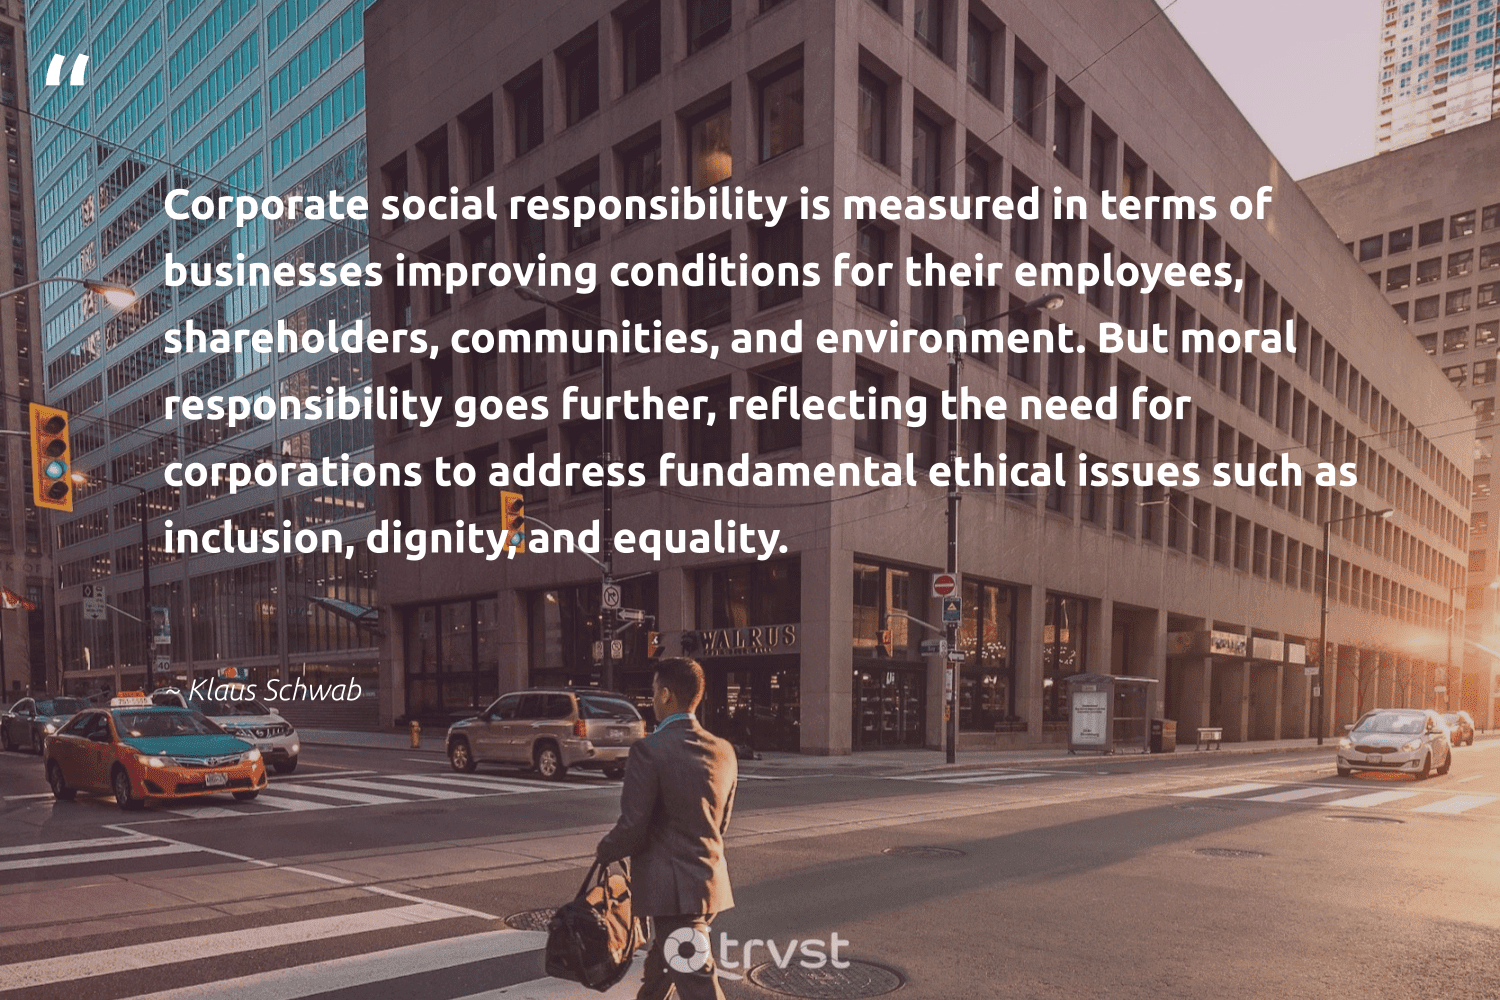 """""""Corporate social responsibility is measured in terms of businesses improving conditions for their employees, shareholders, communities, and environment. But moral responsibility goes further, reflecting the need for corporations to address fundamental ethical issues such as inclusion, dignity, and equality.""""  - Klaus Schwab #trvst #quotes #environment #ethical #equality #inclusion #corporatesocialresponsibility #communities #earth #sustainable #wildlifeplanet #impact"""